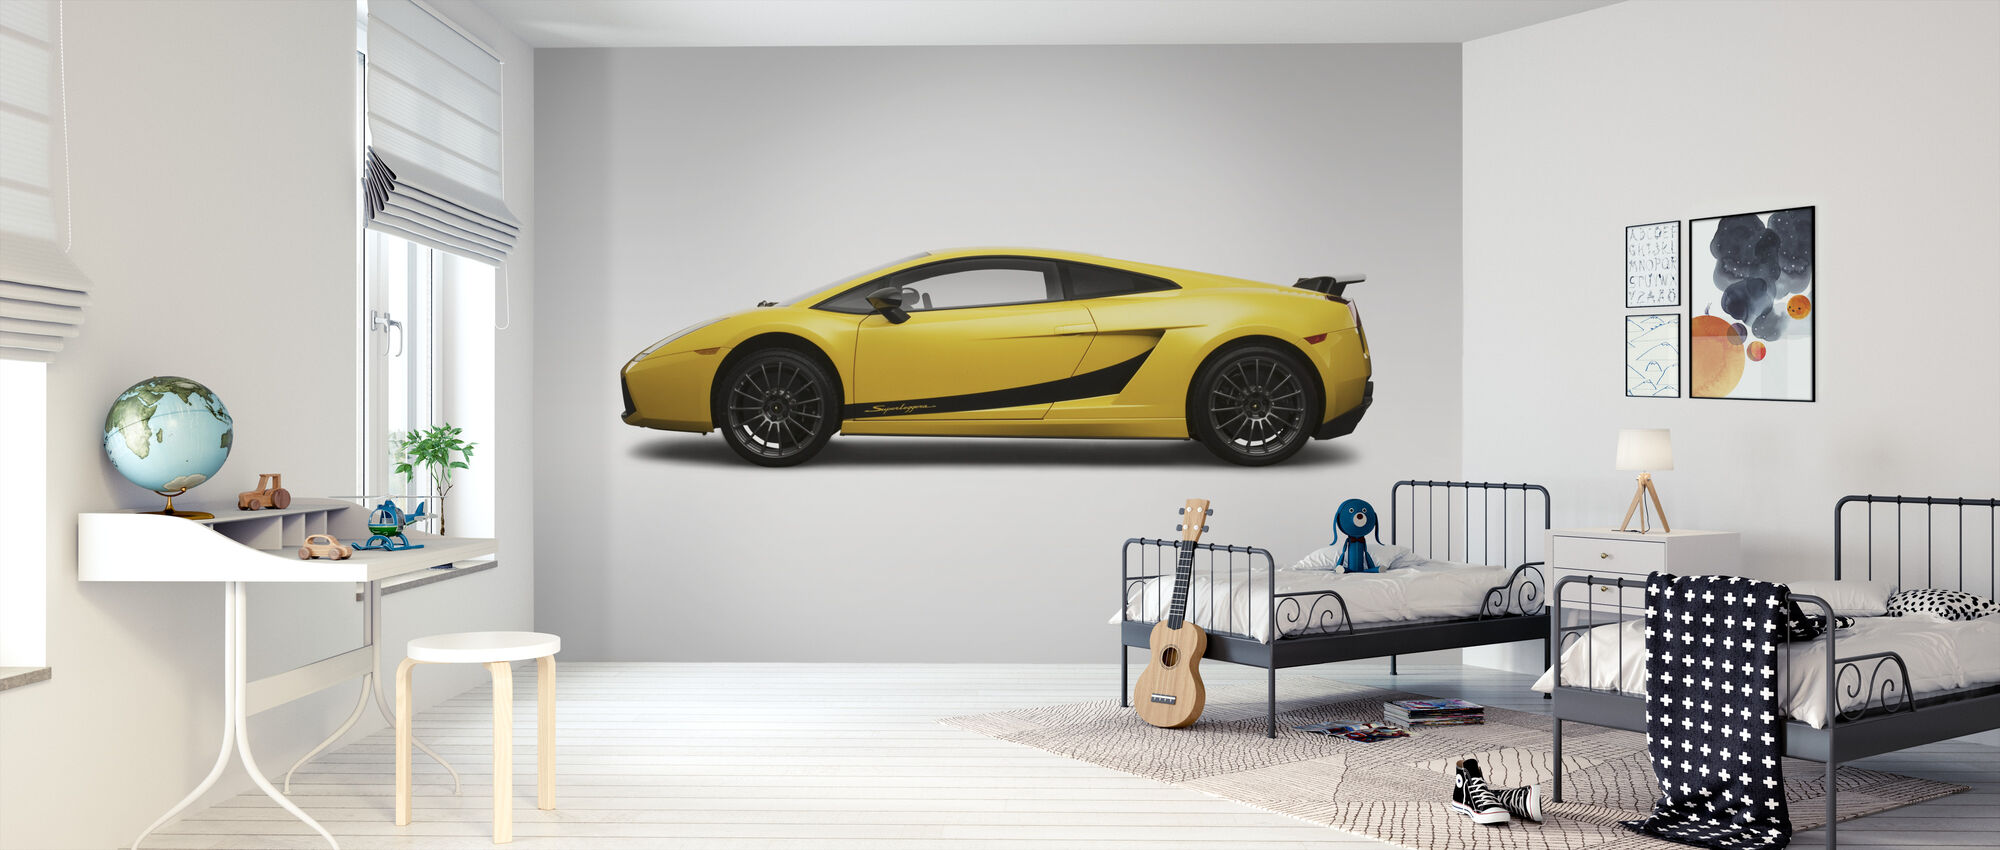 Superleggera - Wallpaper - Kids Room